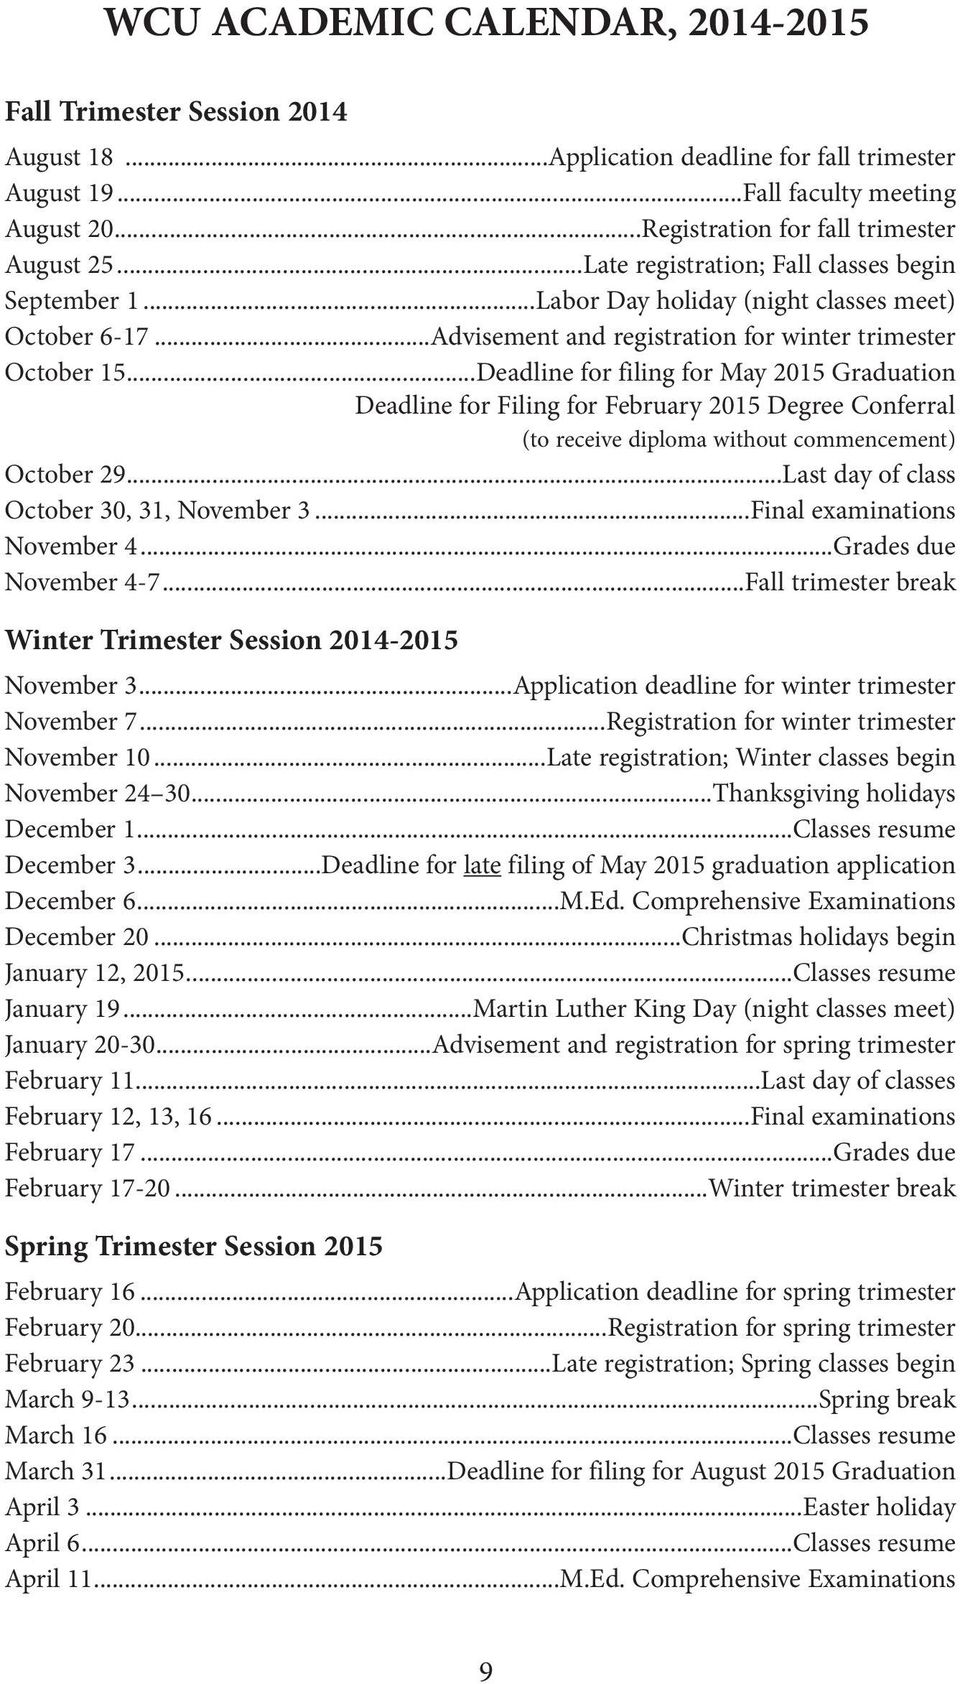 ..Deadline for filing for May 2015 Graduation Deadline for Filing for February 2015 Degree Conferral (to receive diploma without commencement) October 29...Last day of class October 30, 31, November 3.